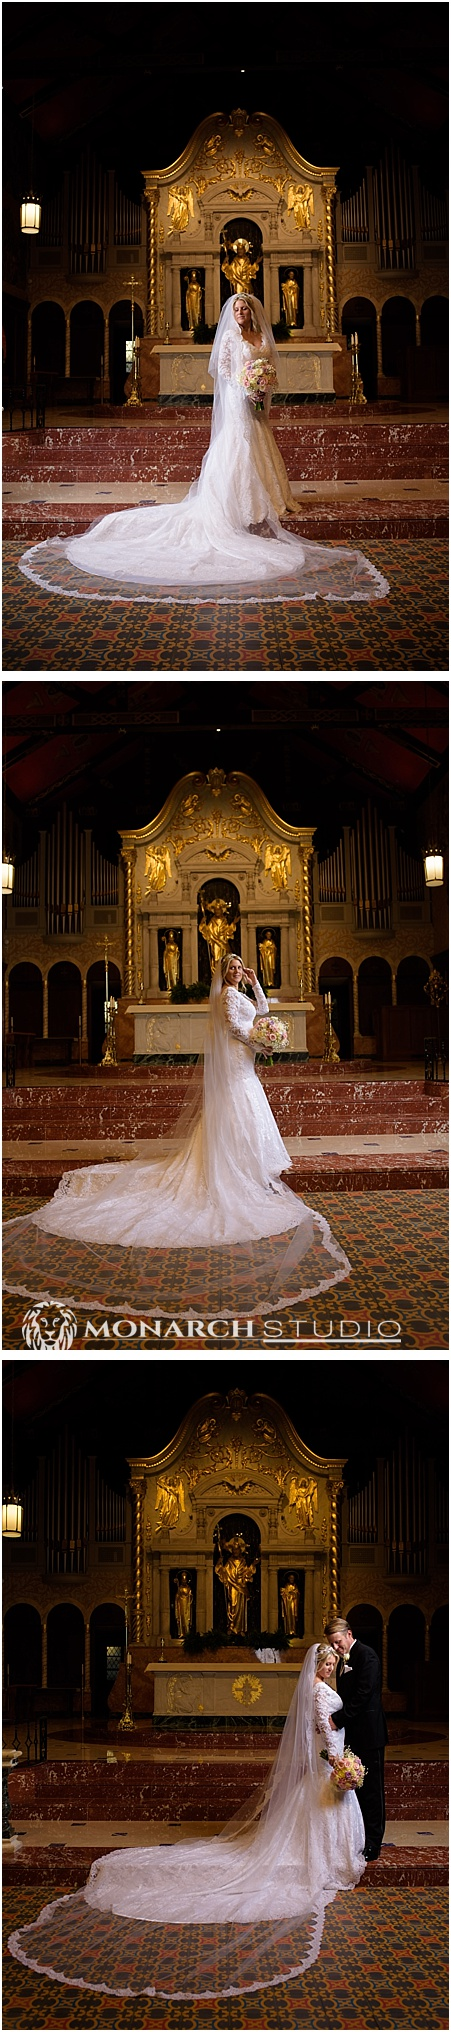 047-saint-augustine-wedding.jpg